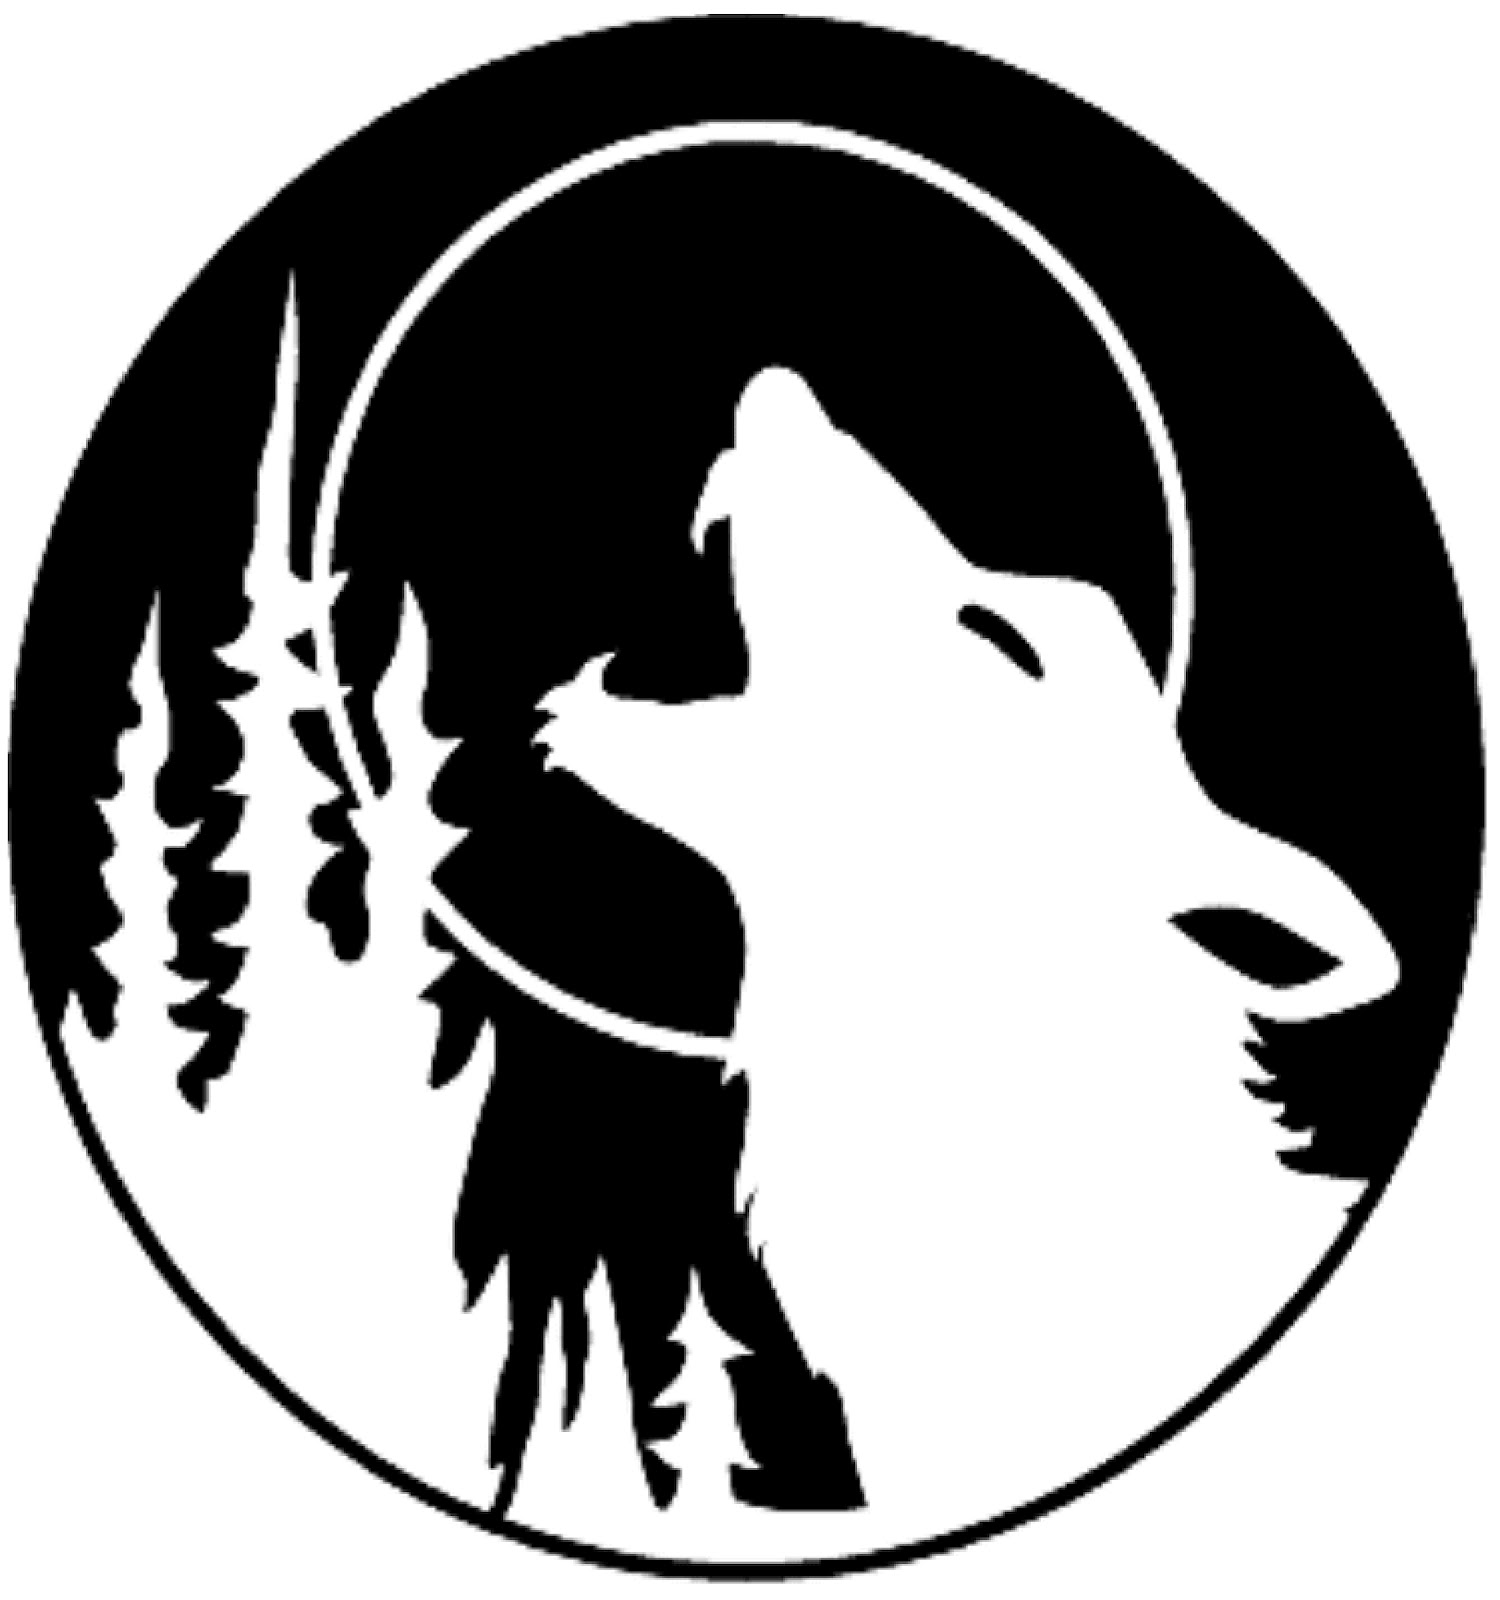 Halloween Silhouette Patterns at GetDrawings.com | Free for personal ...